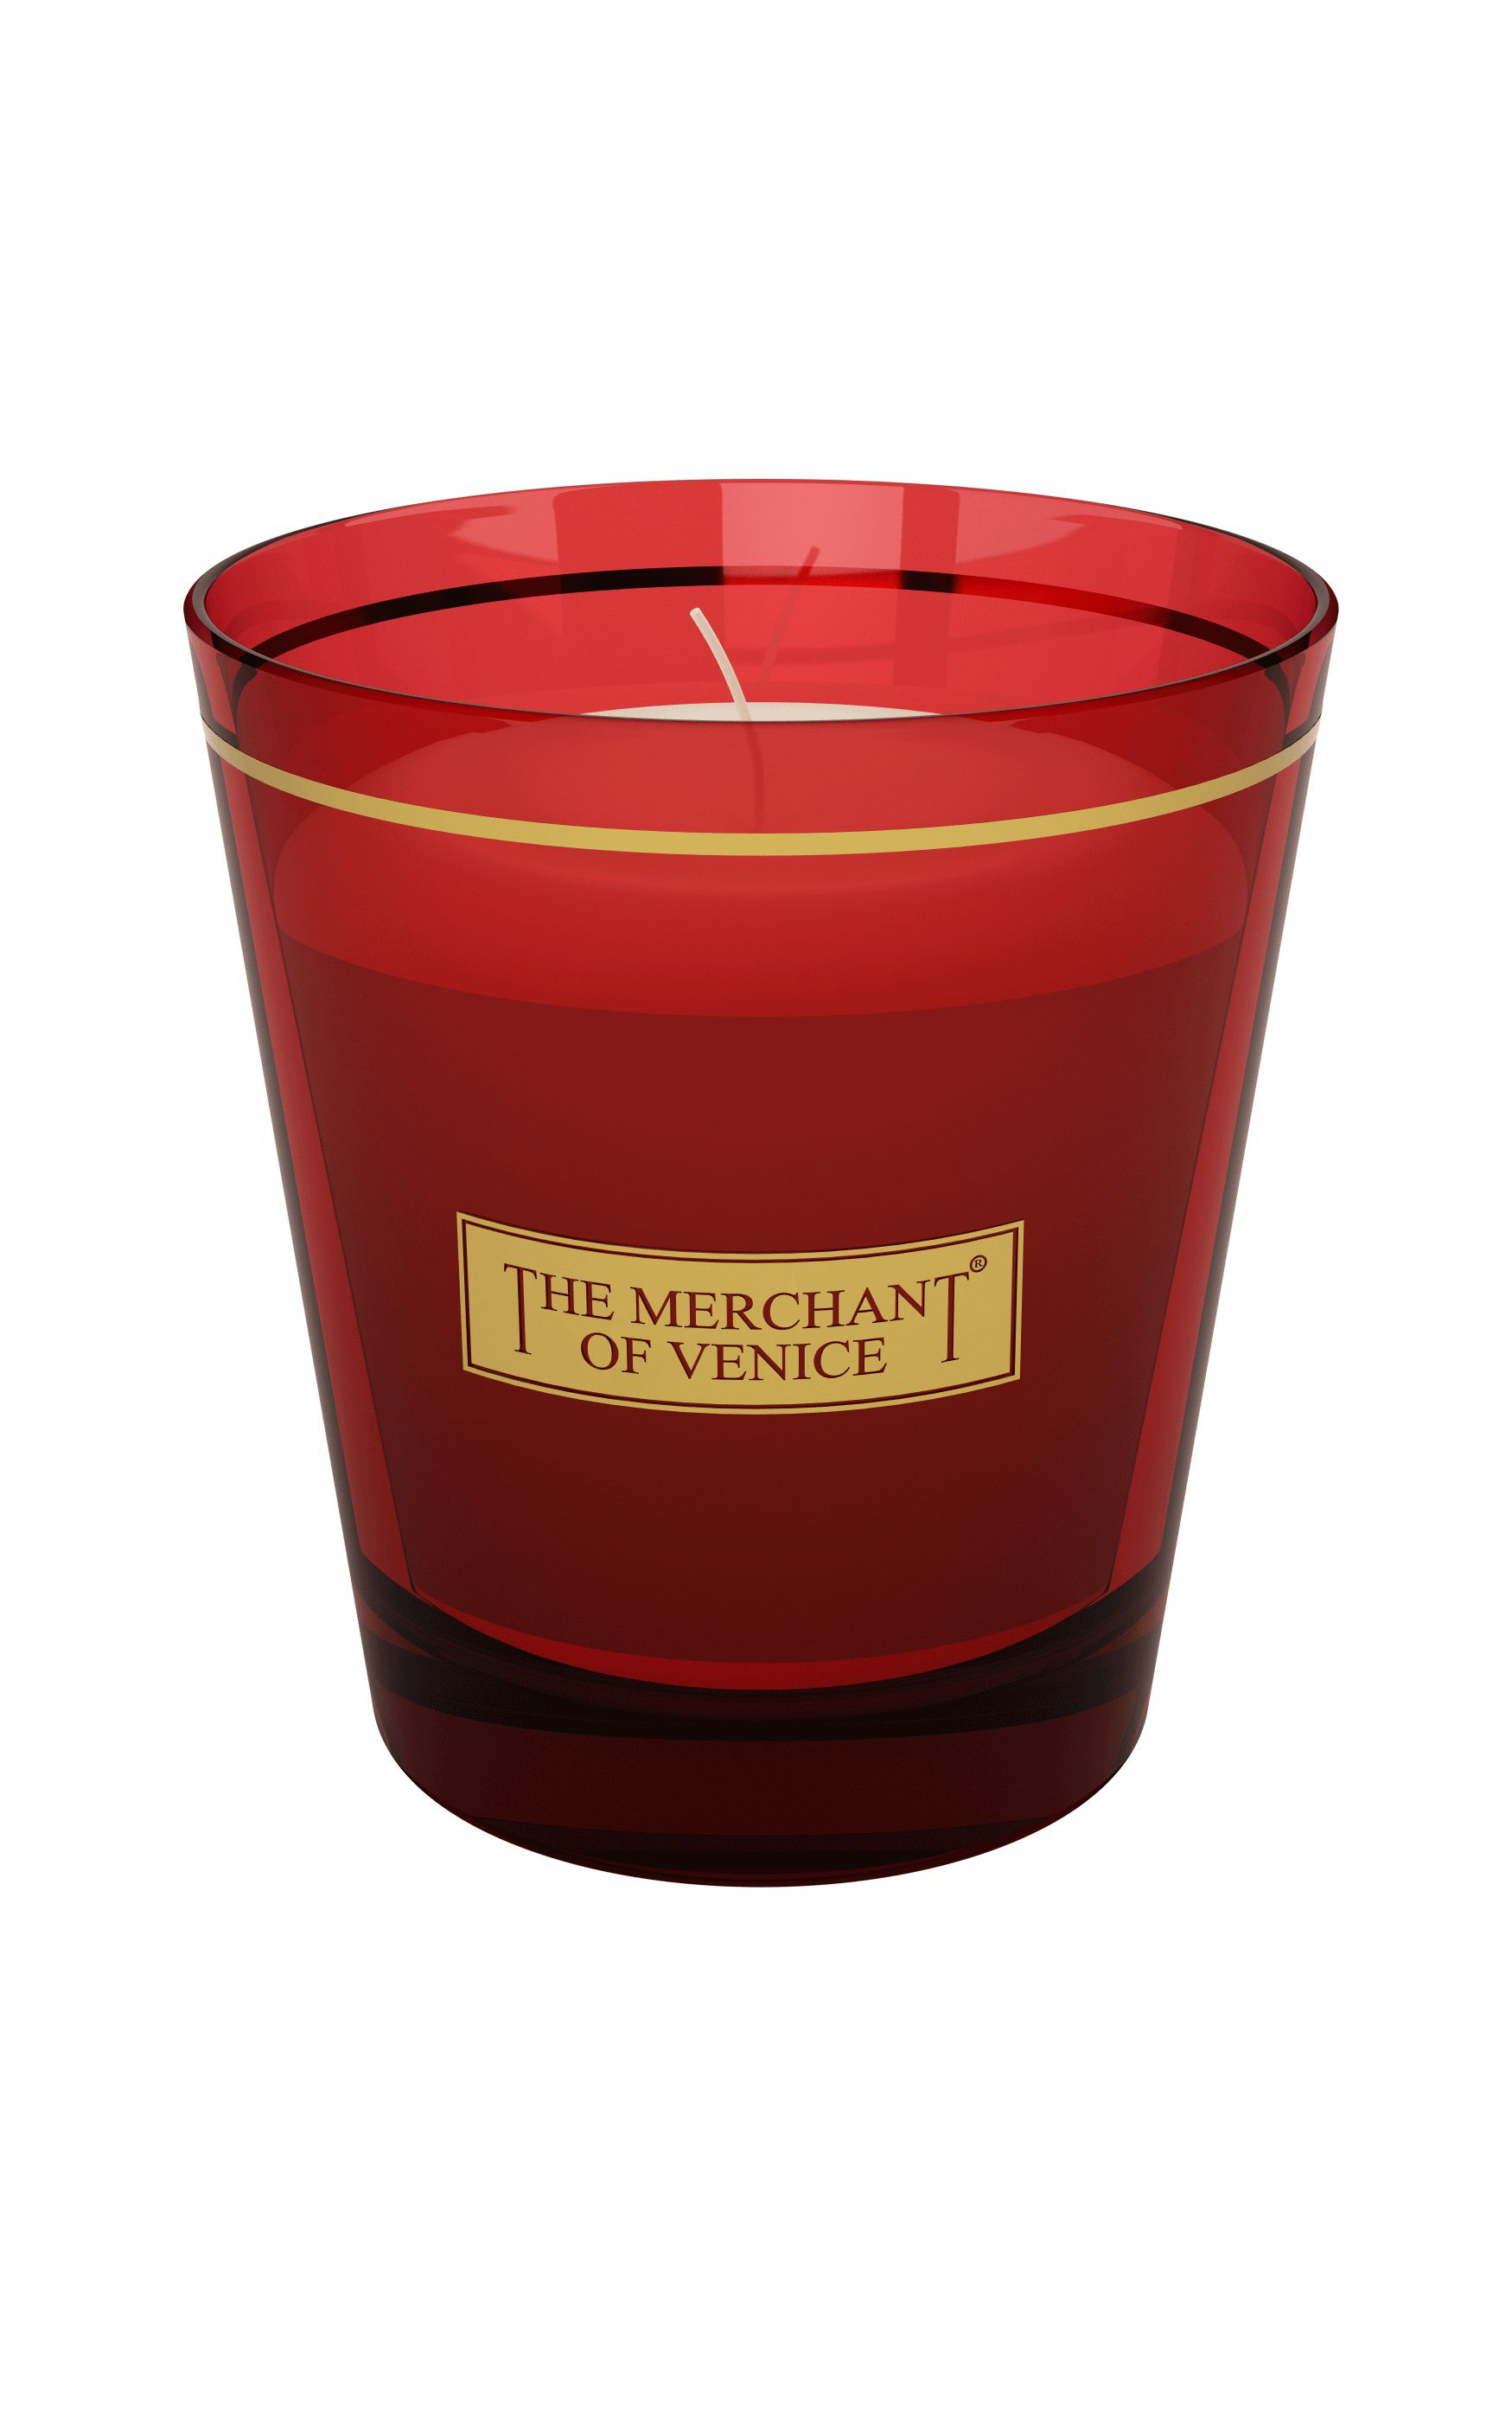 Image of The Merchant Of Venice Cashmere Wood Perfumed Candle 230g